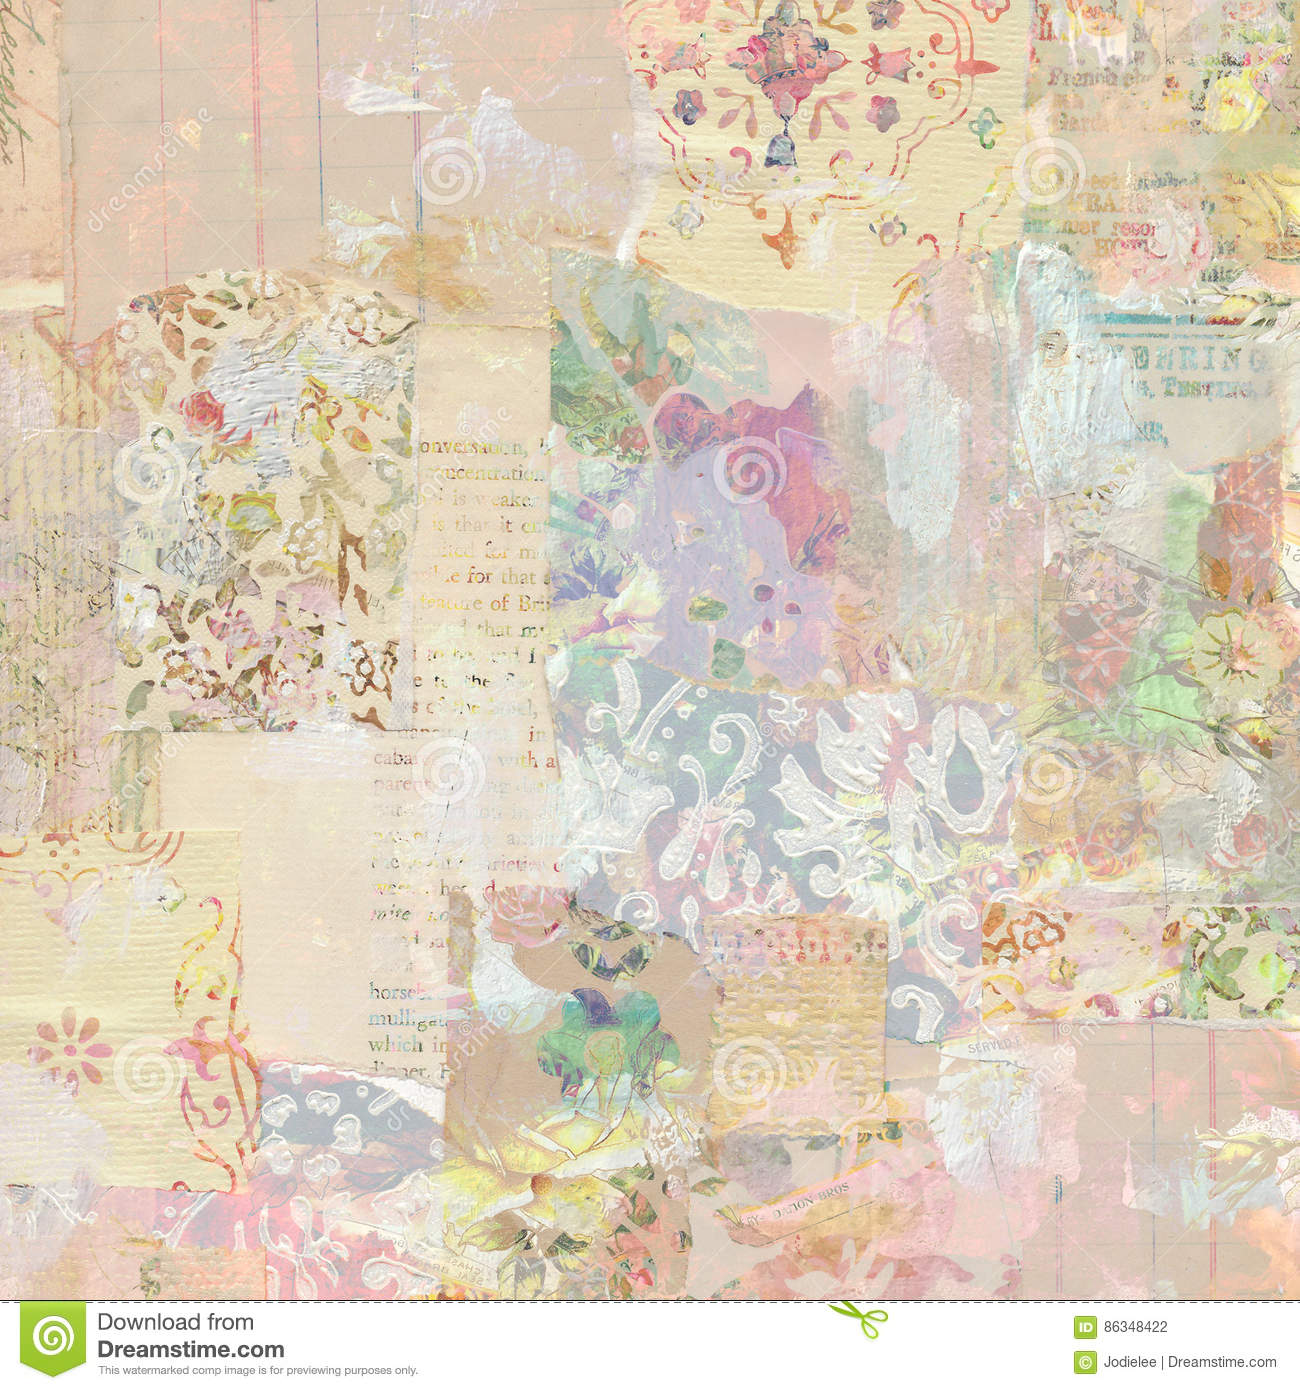 Grungy Antique Vintage Floral wallpaper collage Background